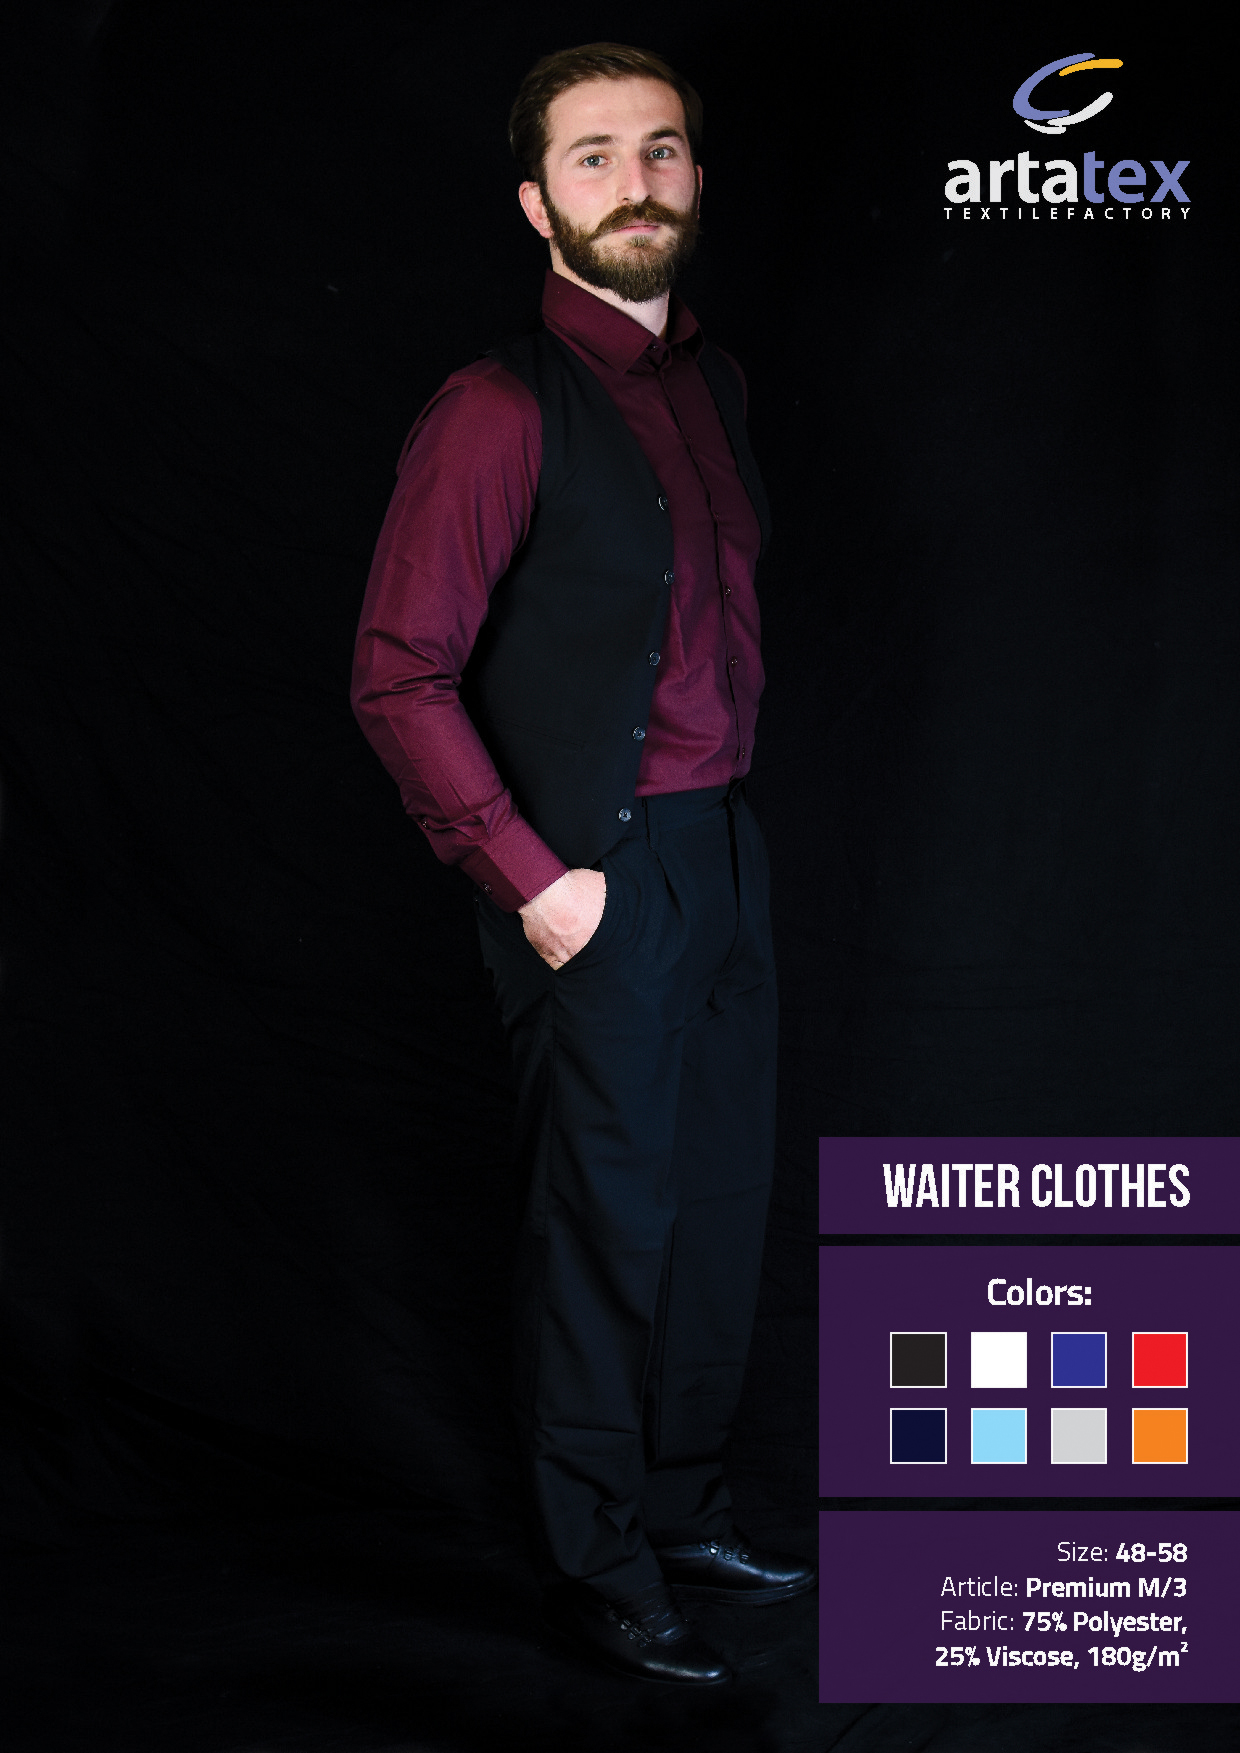 ArtaTex - Waiter Clothes